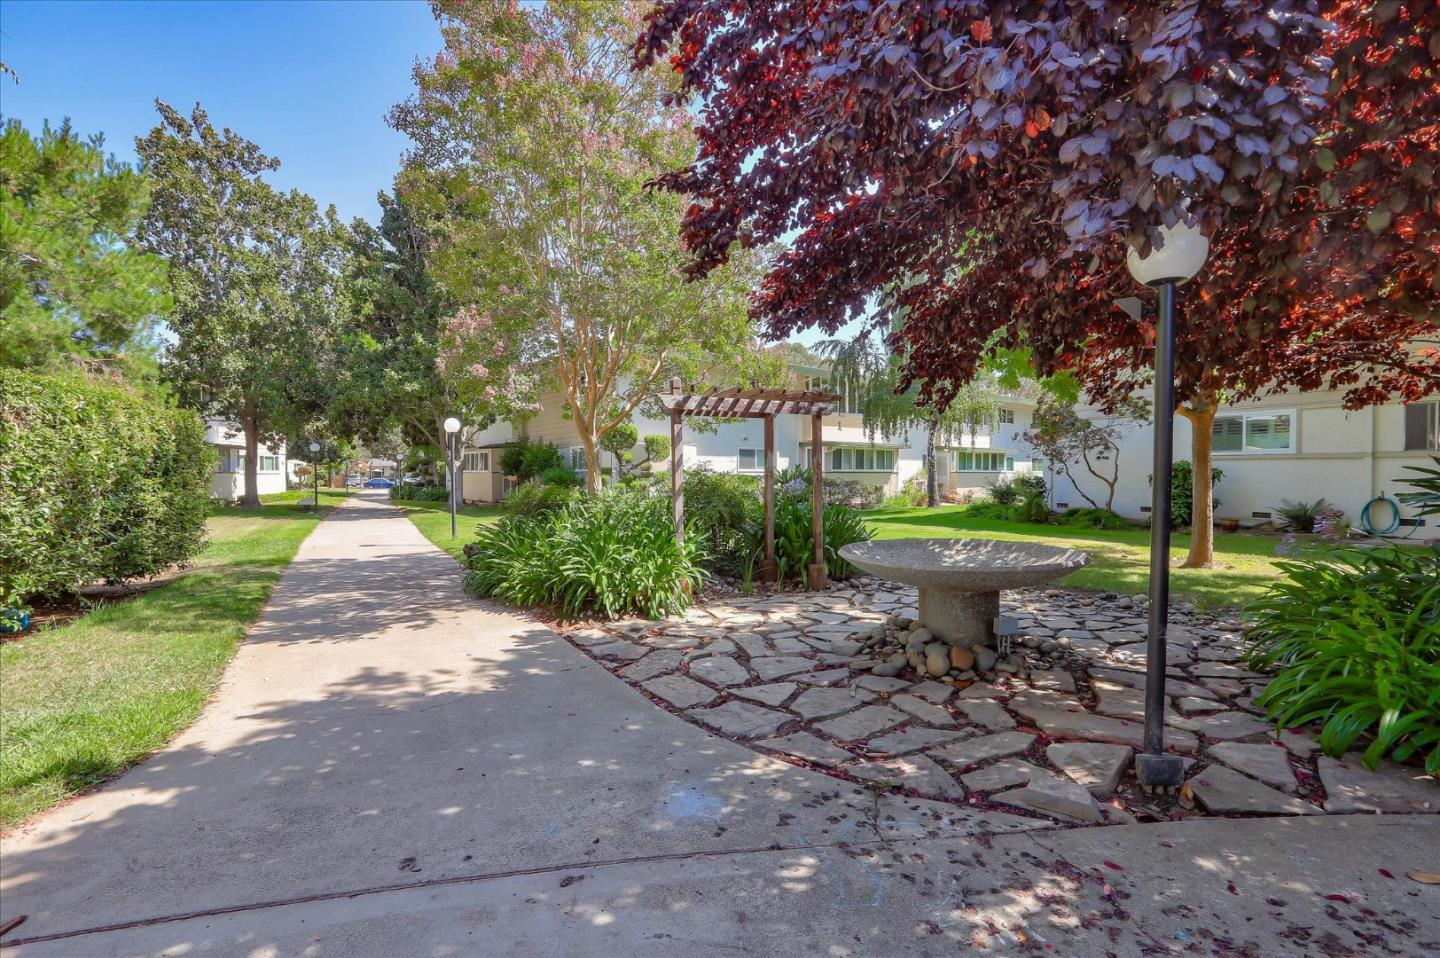 Amazing Location near Rinconada Hills Country Club! Close to Downtown Los Gatos, Los Gatos Creek Trail, Netflix, Bay Club Courtside gym, and Good Samaritan and Los Gatos Hospitals. Lovely, top floor renovated condo nested in the best place of the complex with tree-lined views out the back of the unit. Open floor plan with elegant finishes, including granite counter tops, stainless steel appliances, and recessed lighting throughout, Large bedroom has a custom-designed, built-in closet. HOA fees include the water and garbage. One covered parking space with plenty of visitor spaces. No rental restrictions. Easy access to all Los Gatos and Campbell have to offer including restaurants, shops, Farmers Market, Jack Fisher Family Park, Trader Joe's, Whole Foods, and much more. Great public schools: Marshall Lane Elementary, Rolling Hills Middle, and Westmont High. Disclosures available.